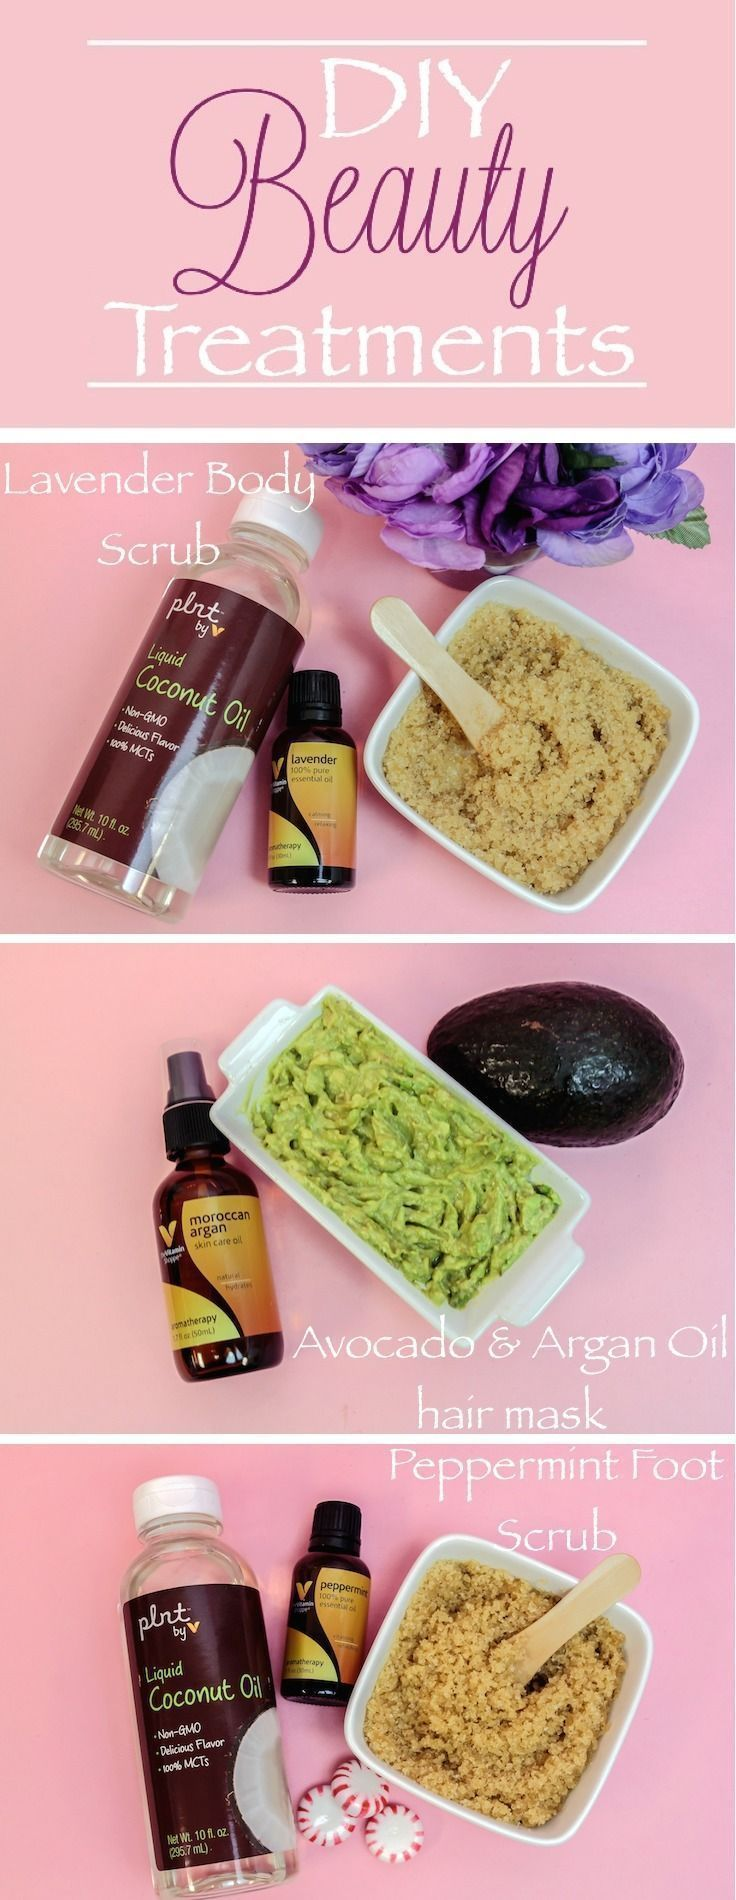 Simple DIY Hair Mask and Body Scrub Recipes #simple #hair mask #body care  -  Hautpflege-Rezepte